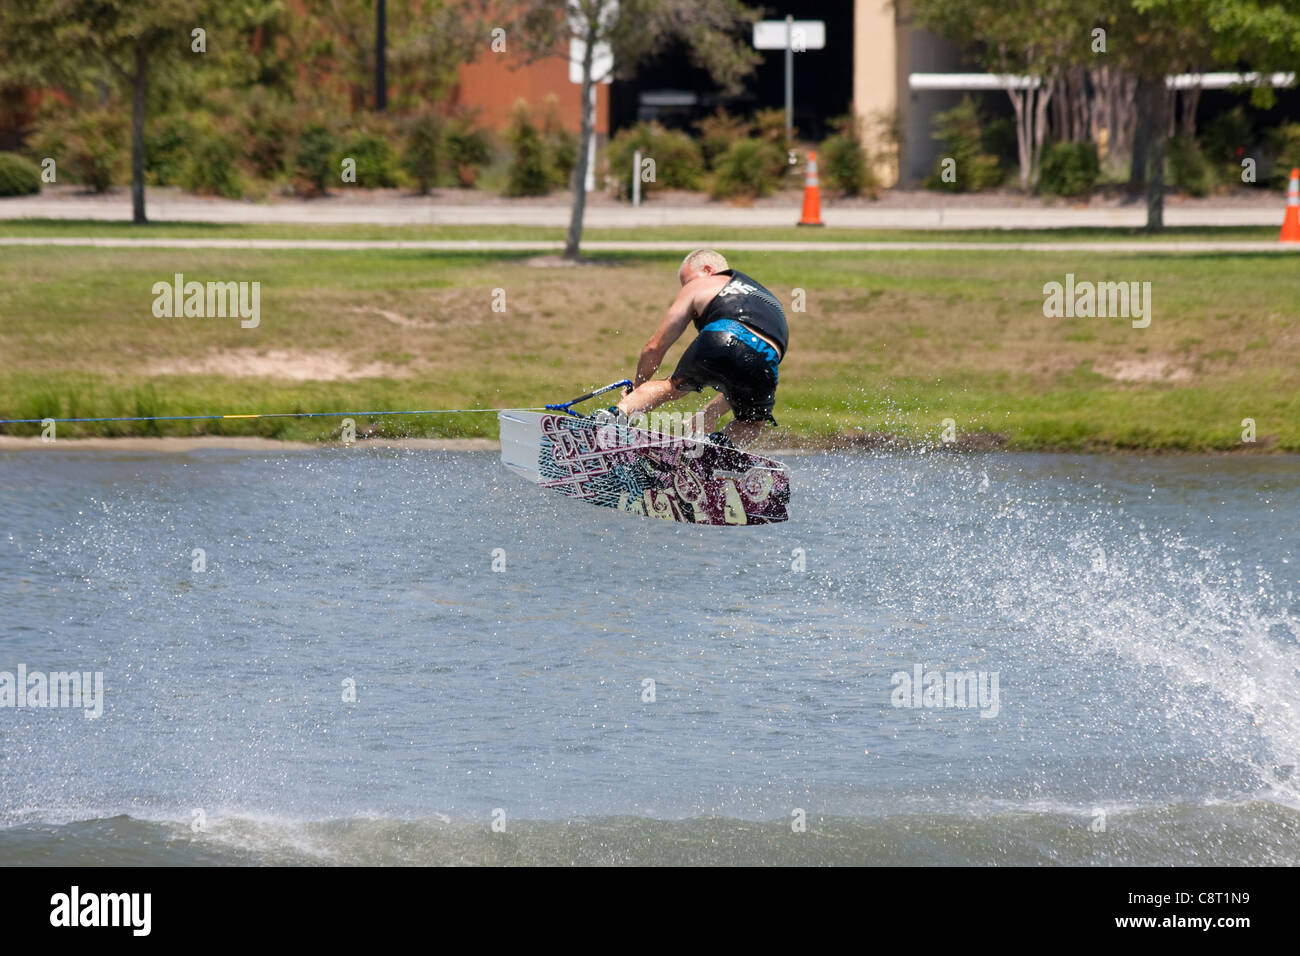 Wake board demonstration Stock Photo